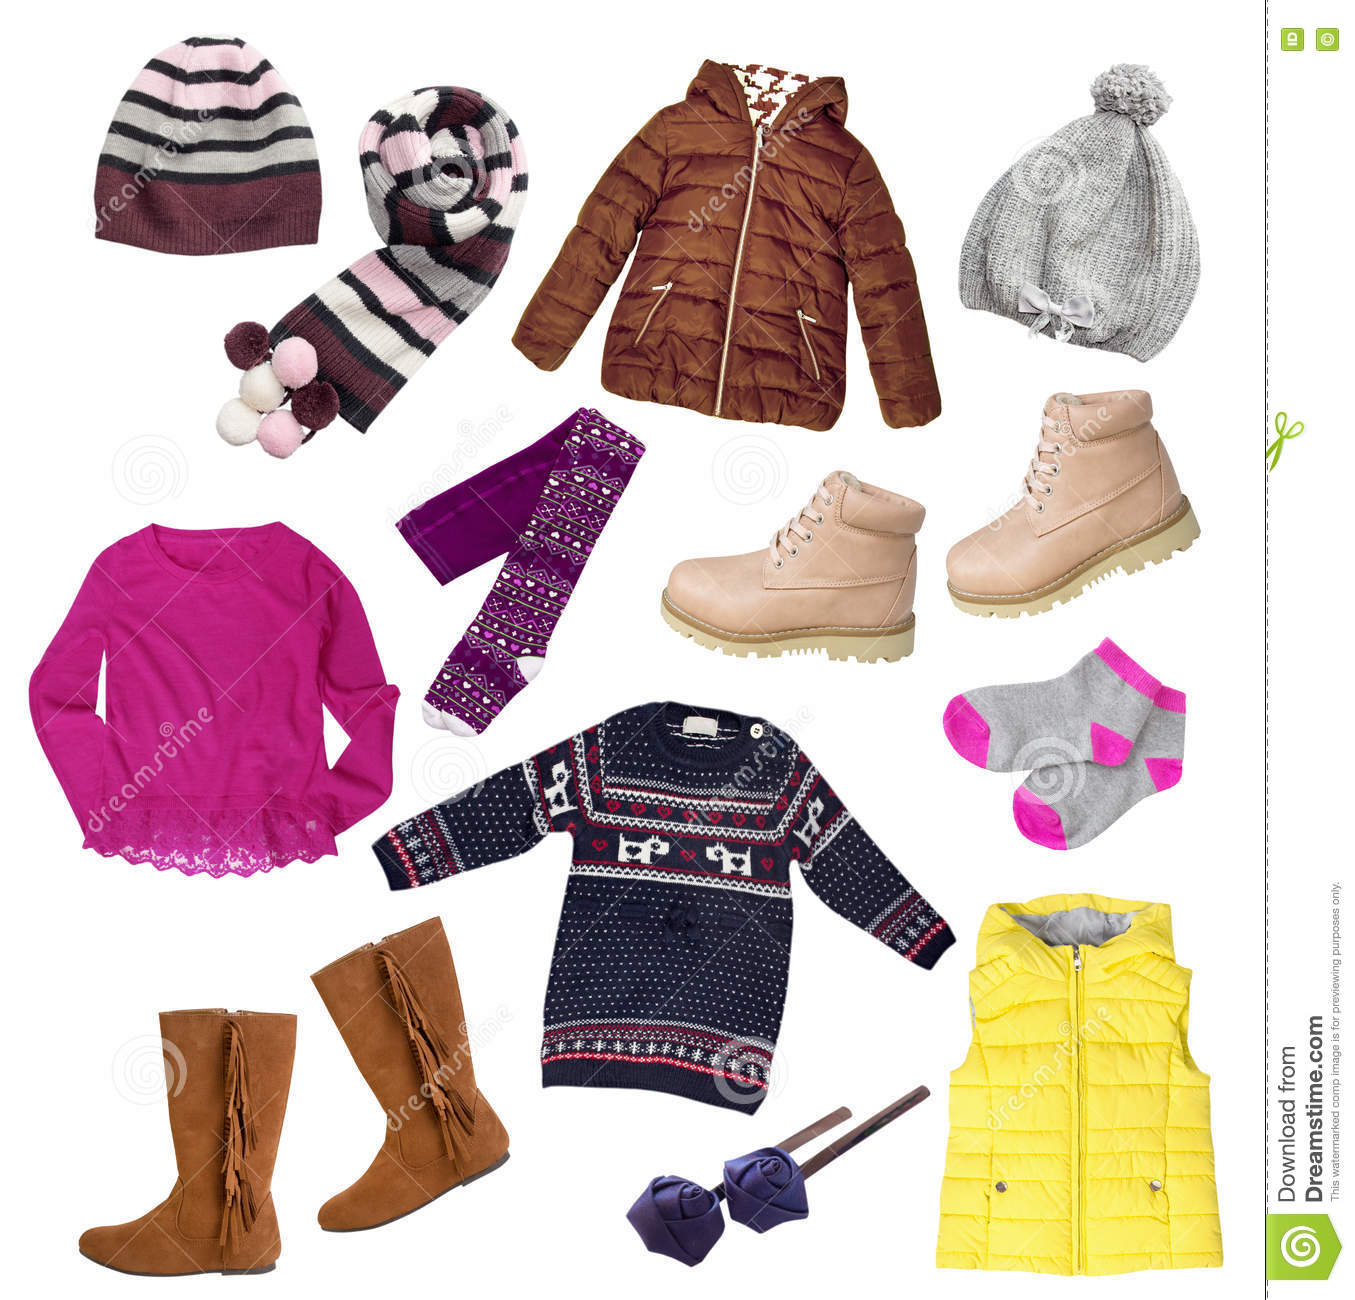 Child girl winter autumn clothes set isolated stock image image 76611145 - Autumn plowing time all set for winter ...